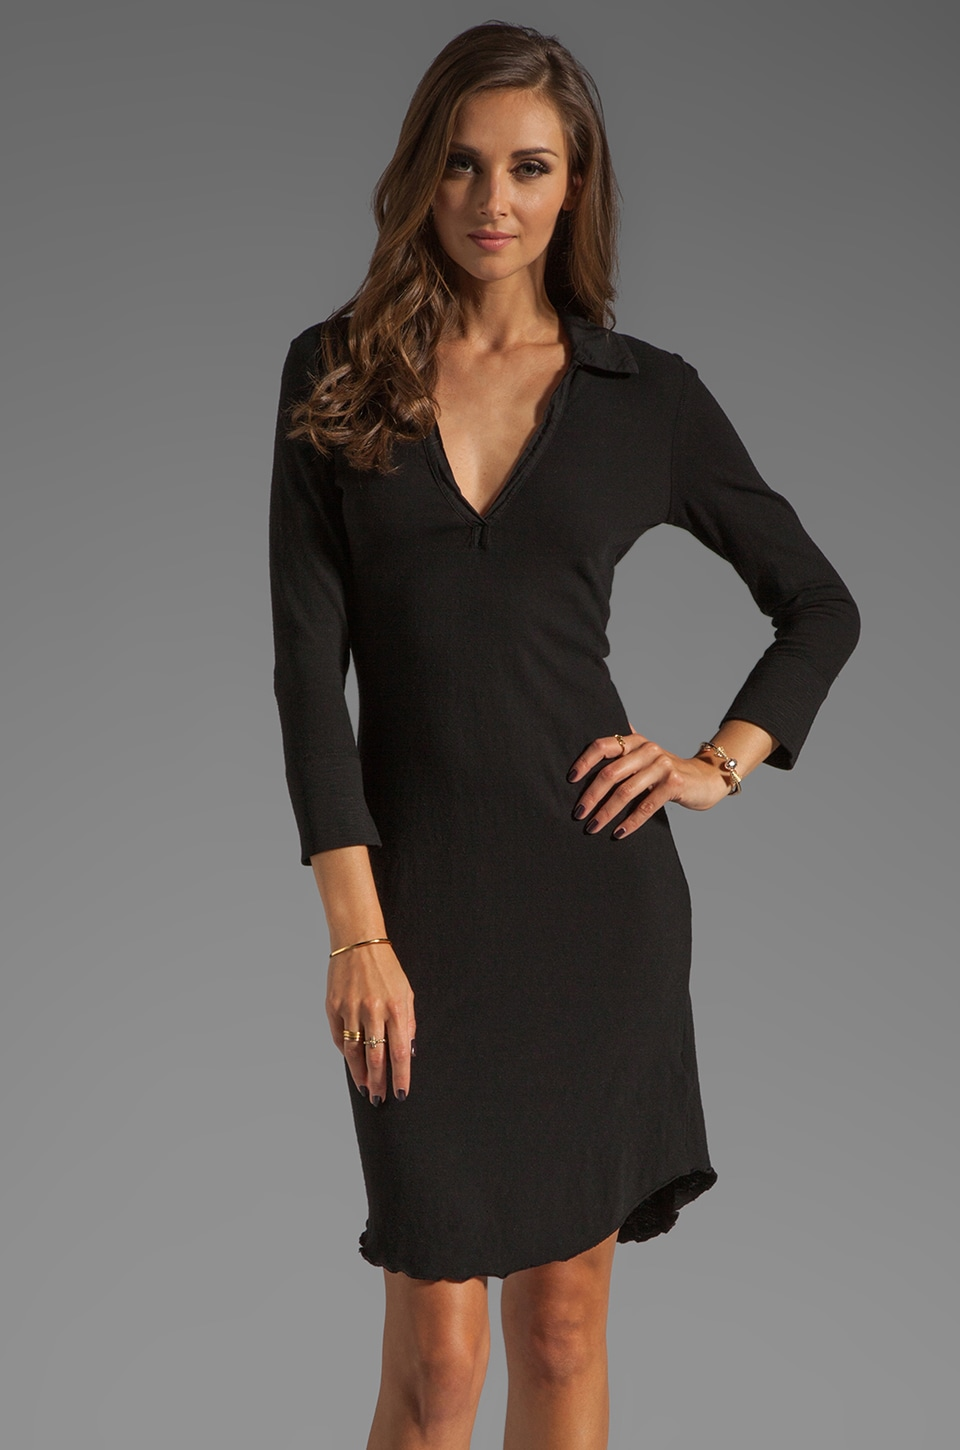 James Perse 3/4 Sleeve Polo Dress in Black